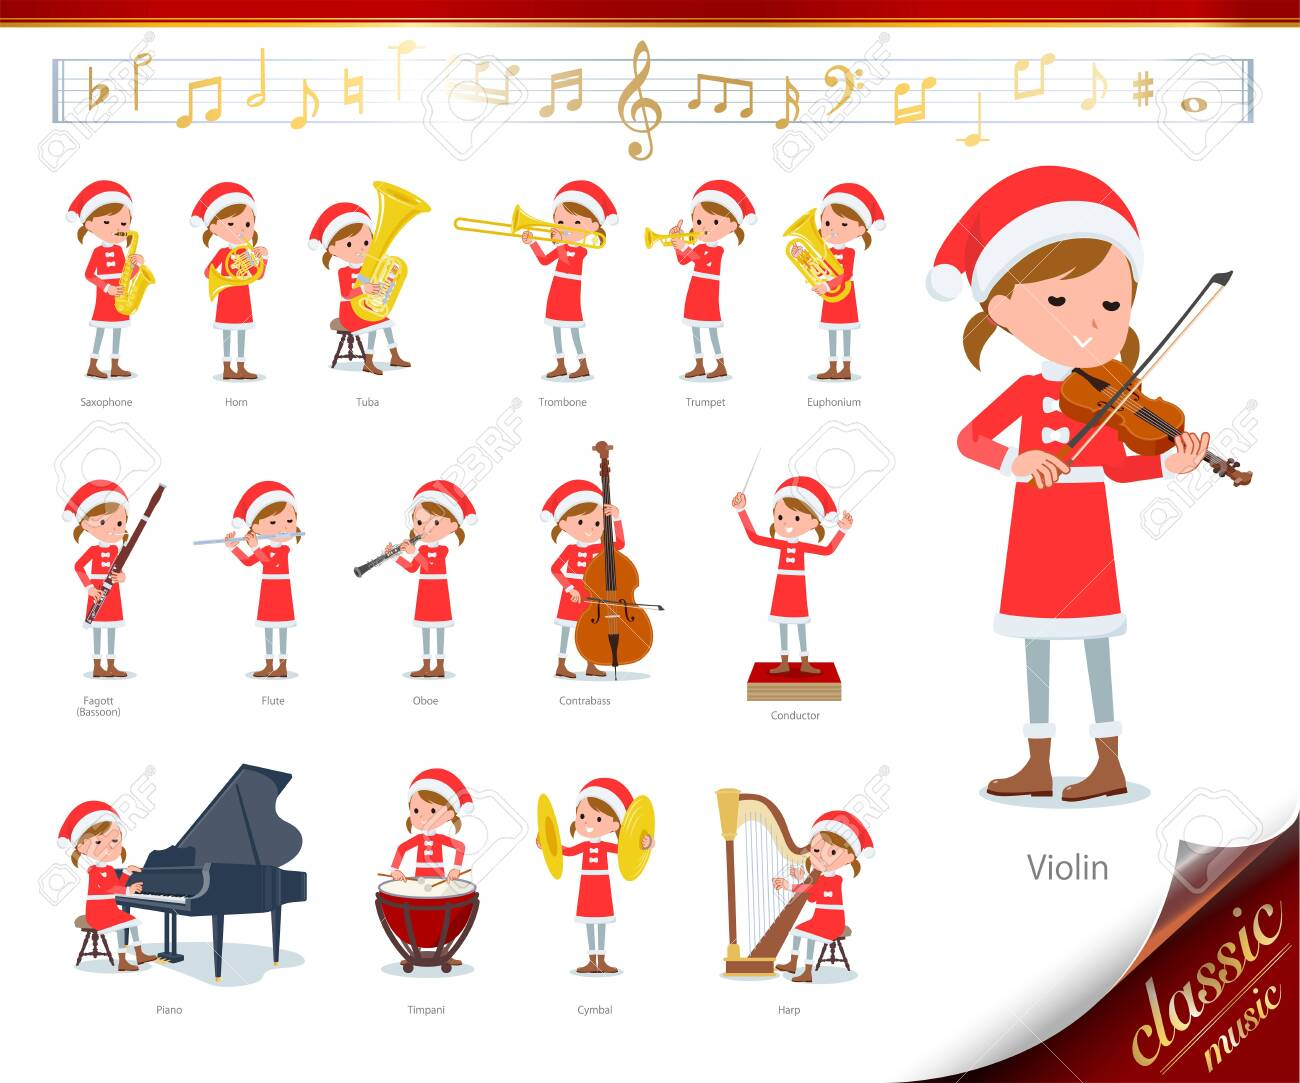 set of Santa Claus costume girl on classical music performances.There are actions to play various instruments such as string instruments and wind instruments.It's vector art so it's easy to edit. - 135189042